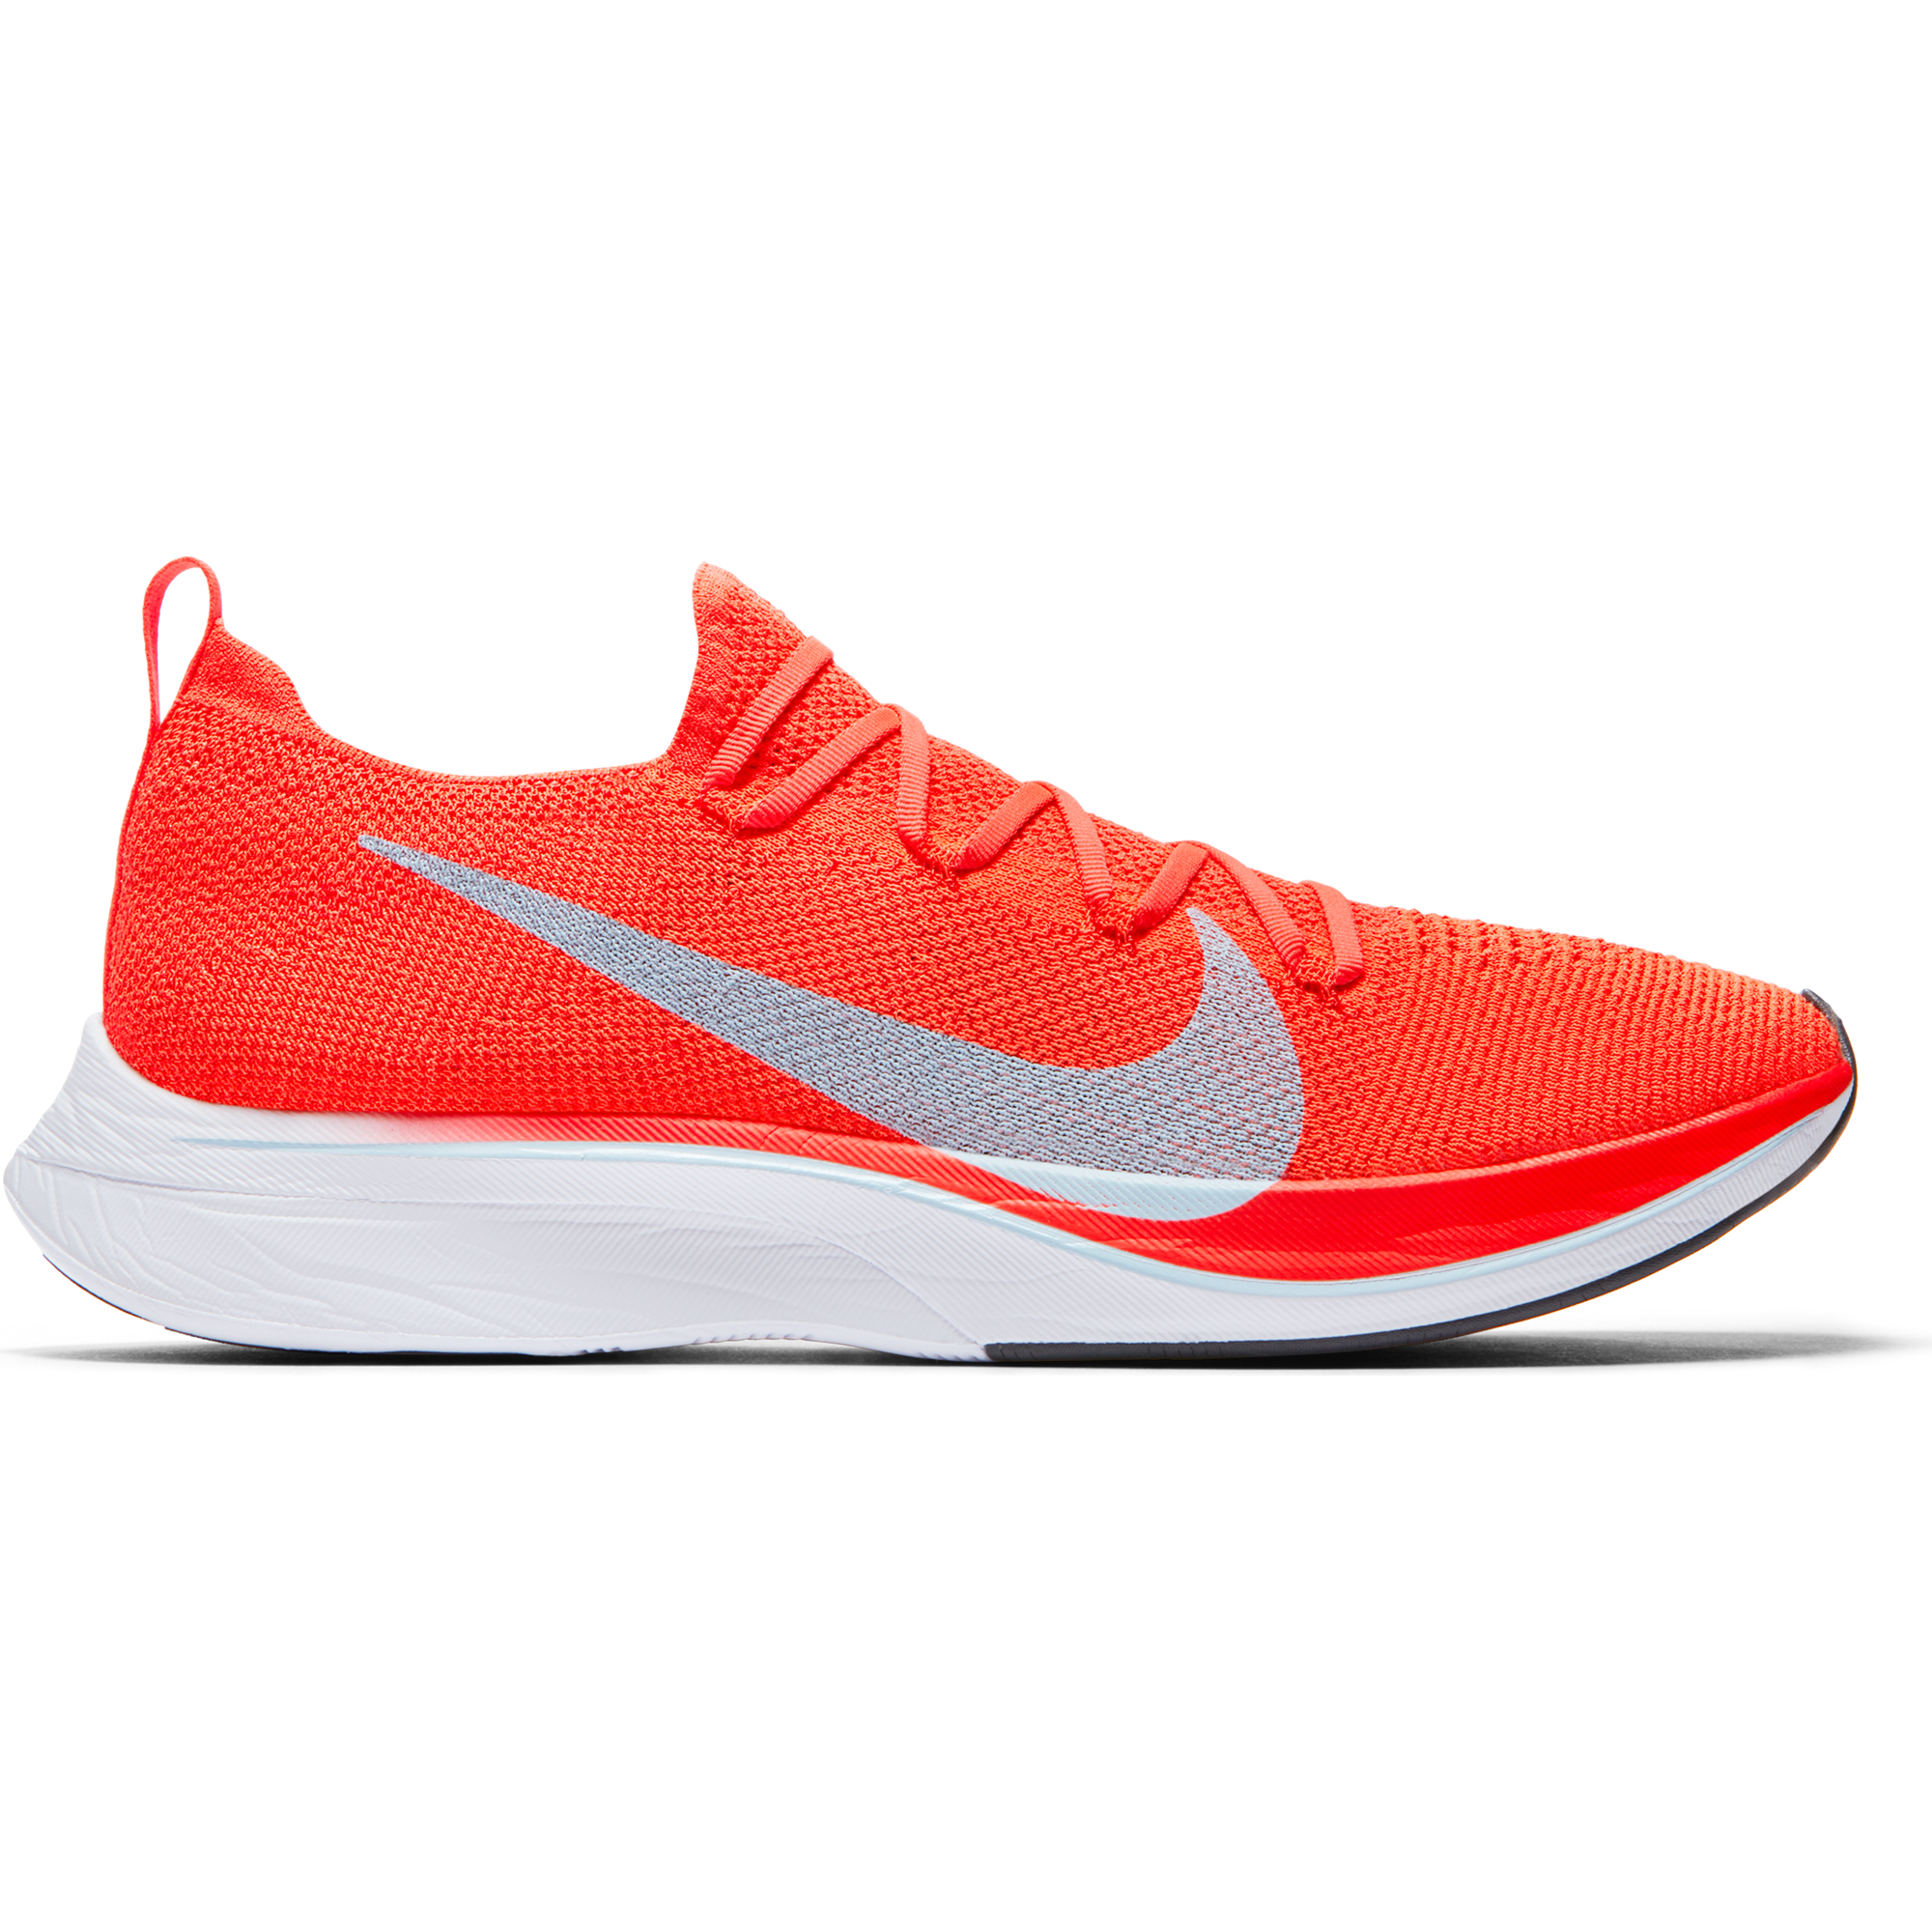 ca19a176df70 Unisex VaporFly 4% Flyknit Racing Flat - Bright Crimson Ice Blue Total –  Gazelle Sports